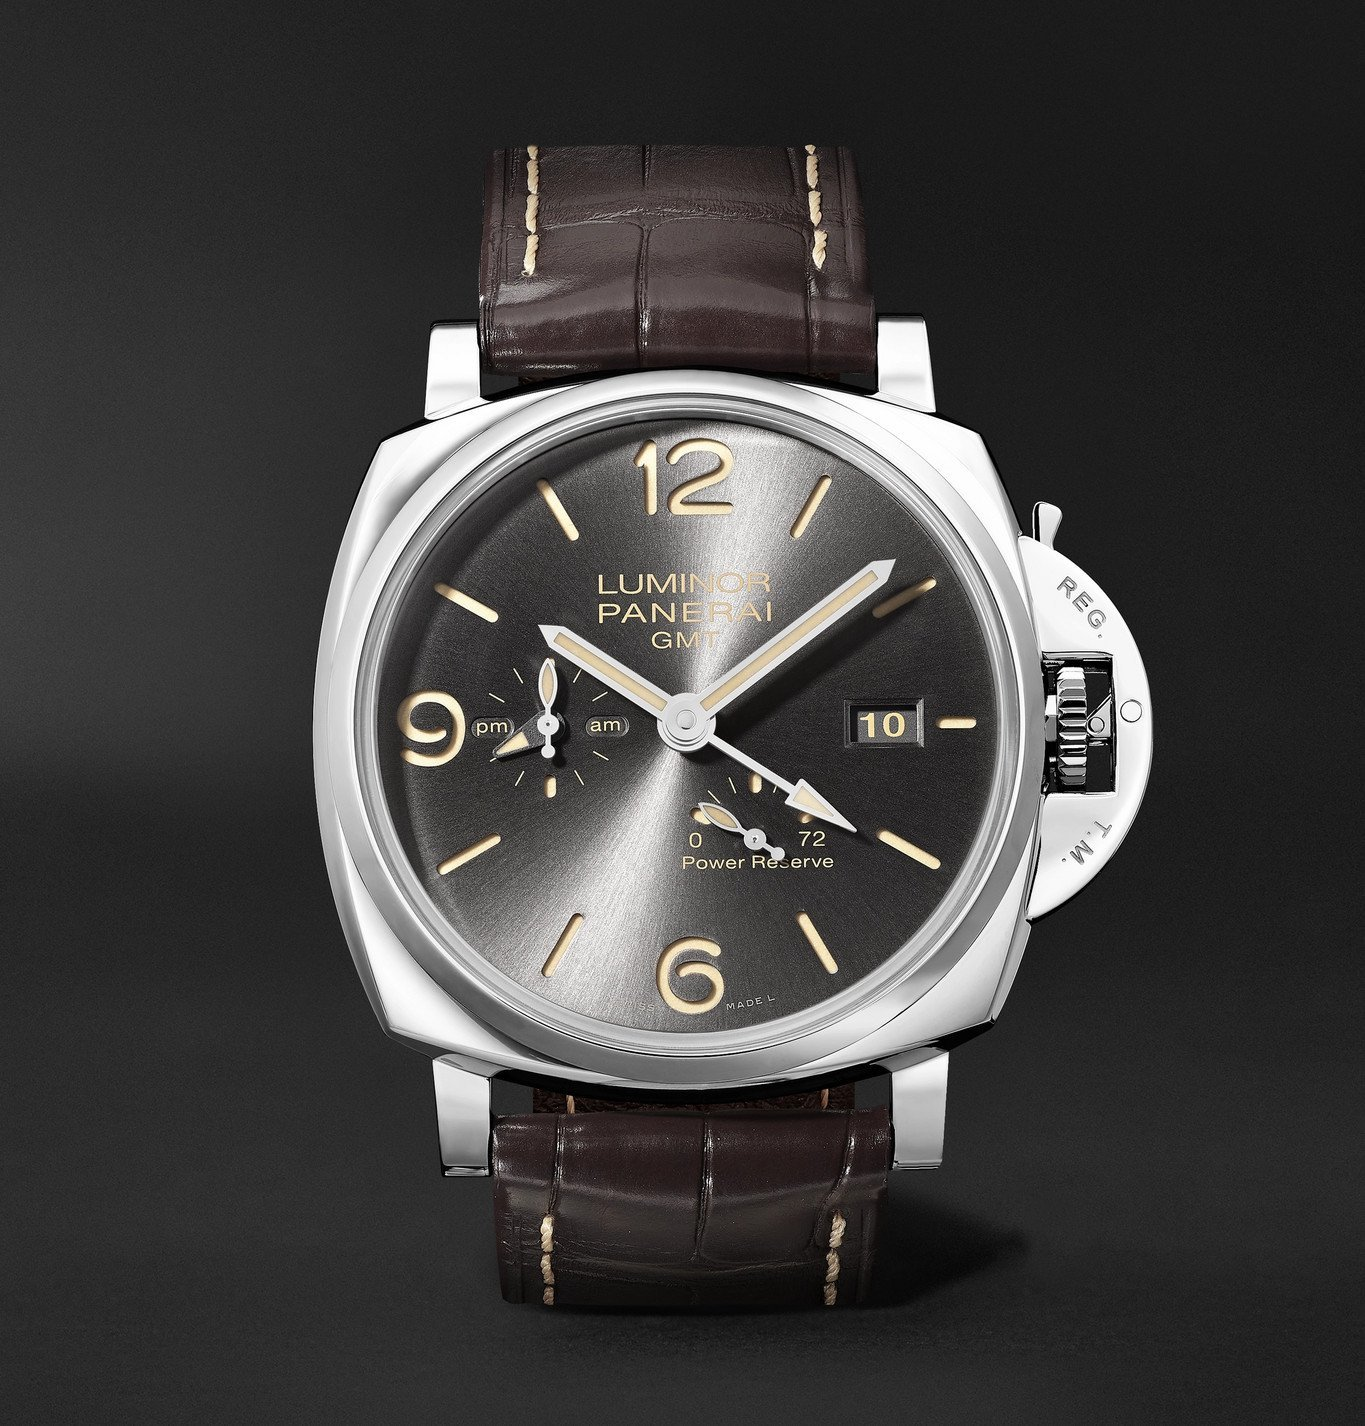 Photo: Panerai - Luminor Due GMT Automatic 45mm Stainless Steel and Alligator Watch, Ref. No. PAM00944 - Gray